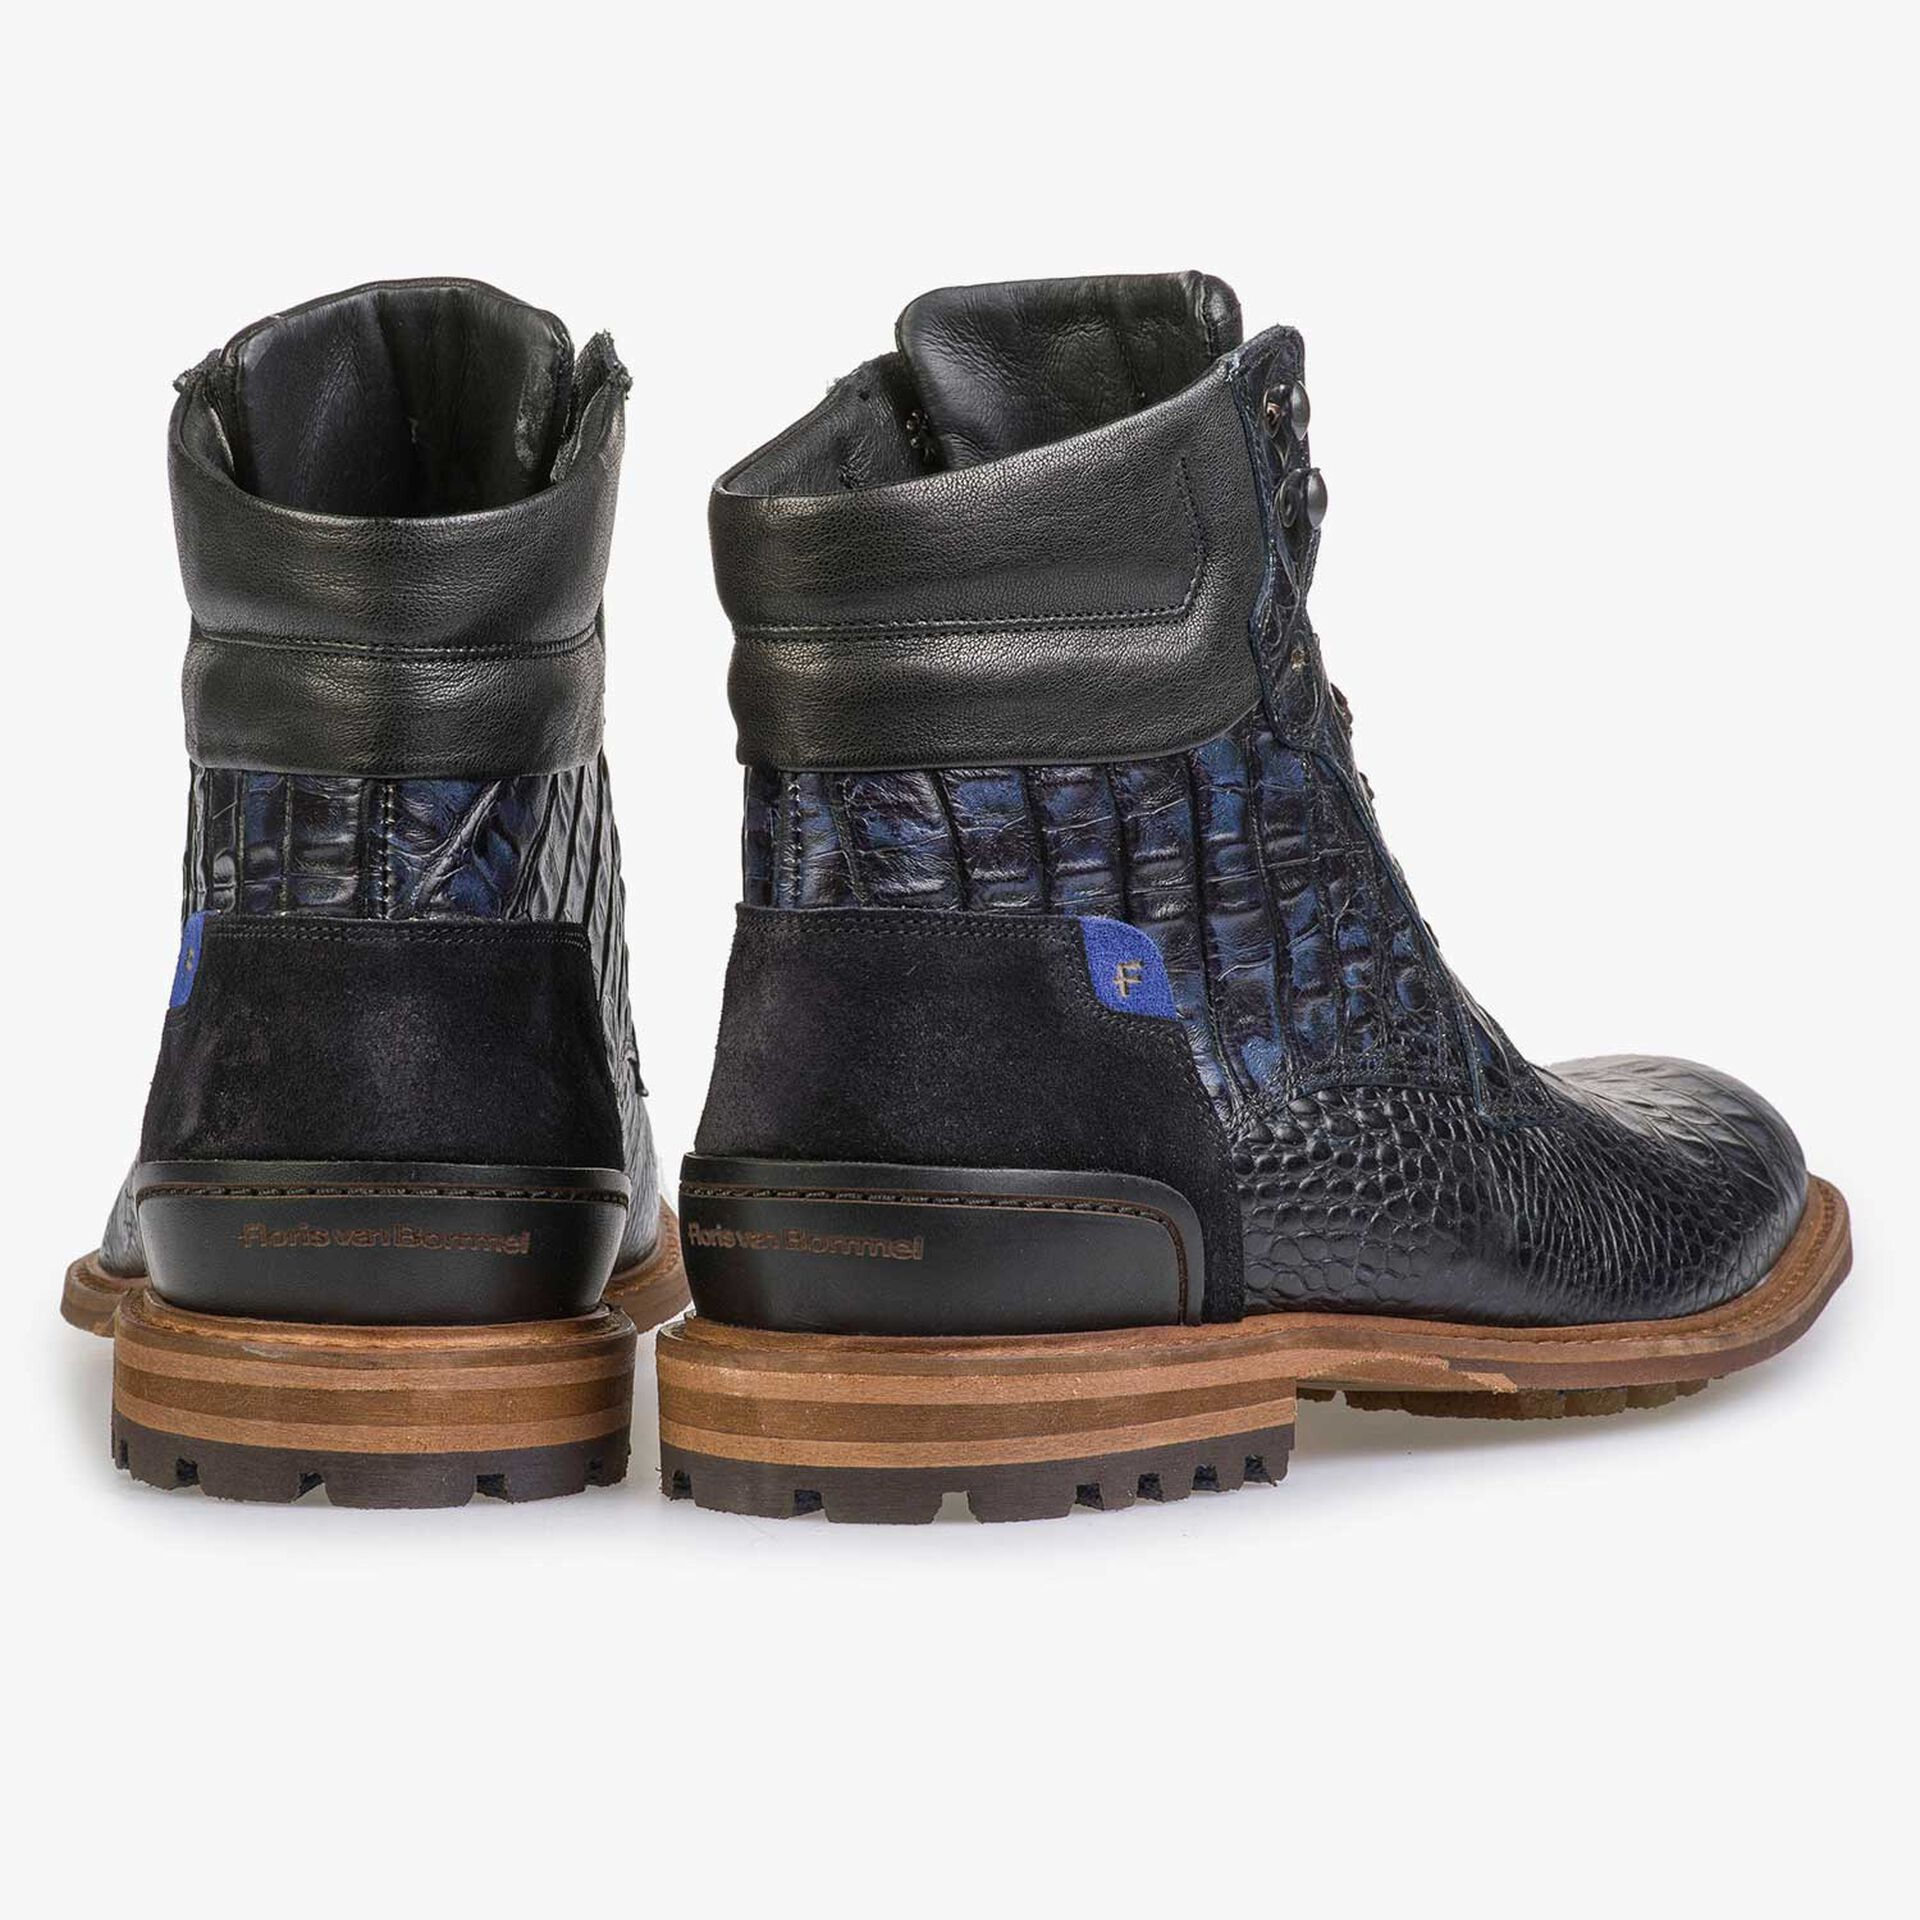 Blue calf leather lace boot with croco print